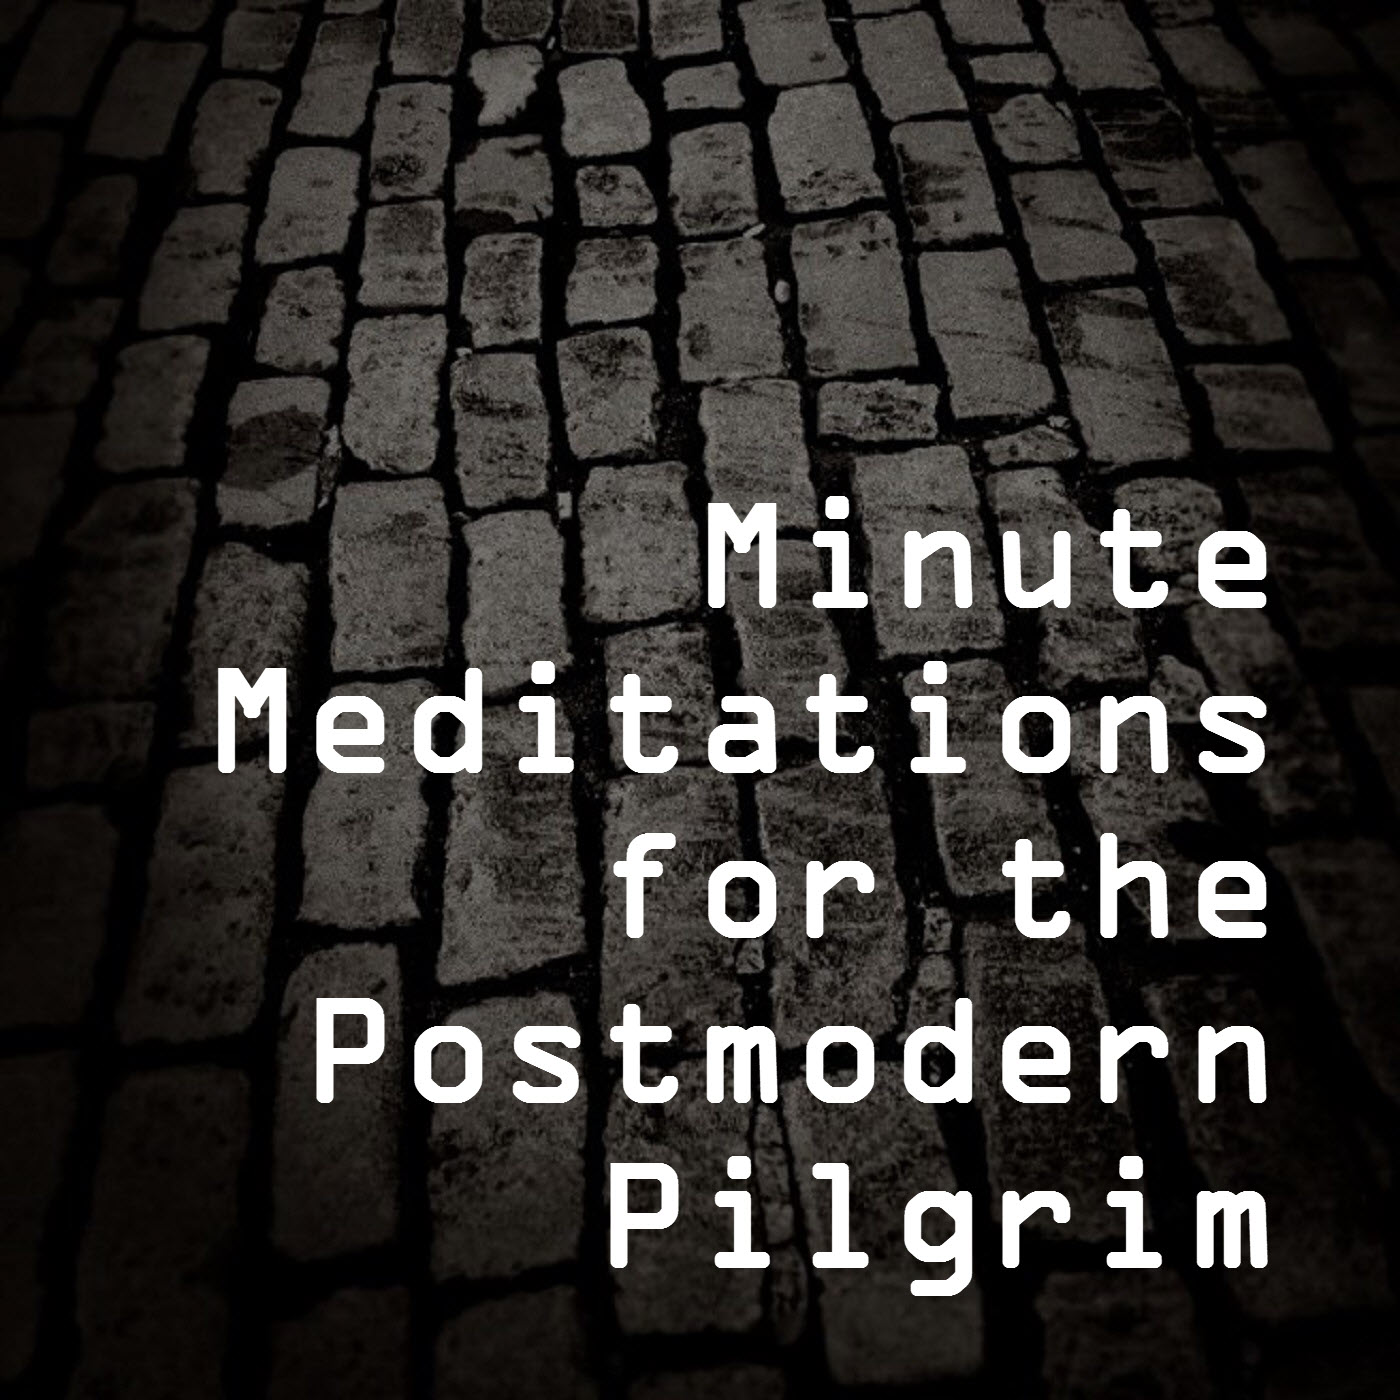 Minute Meditations for the Postmodern Pilgrim logo